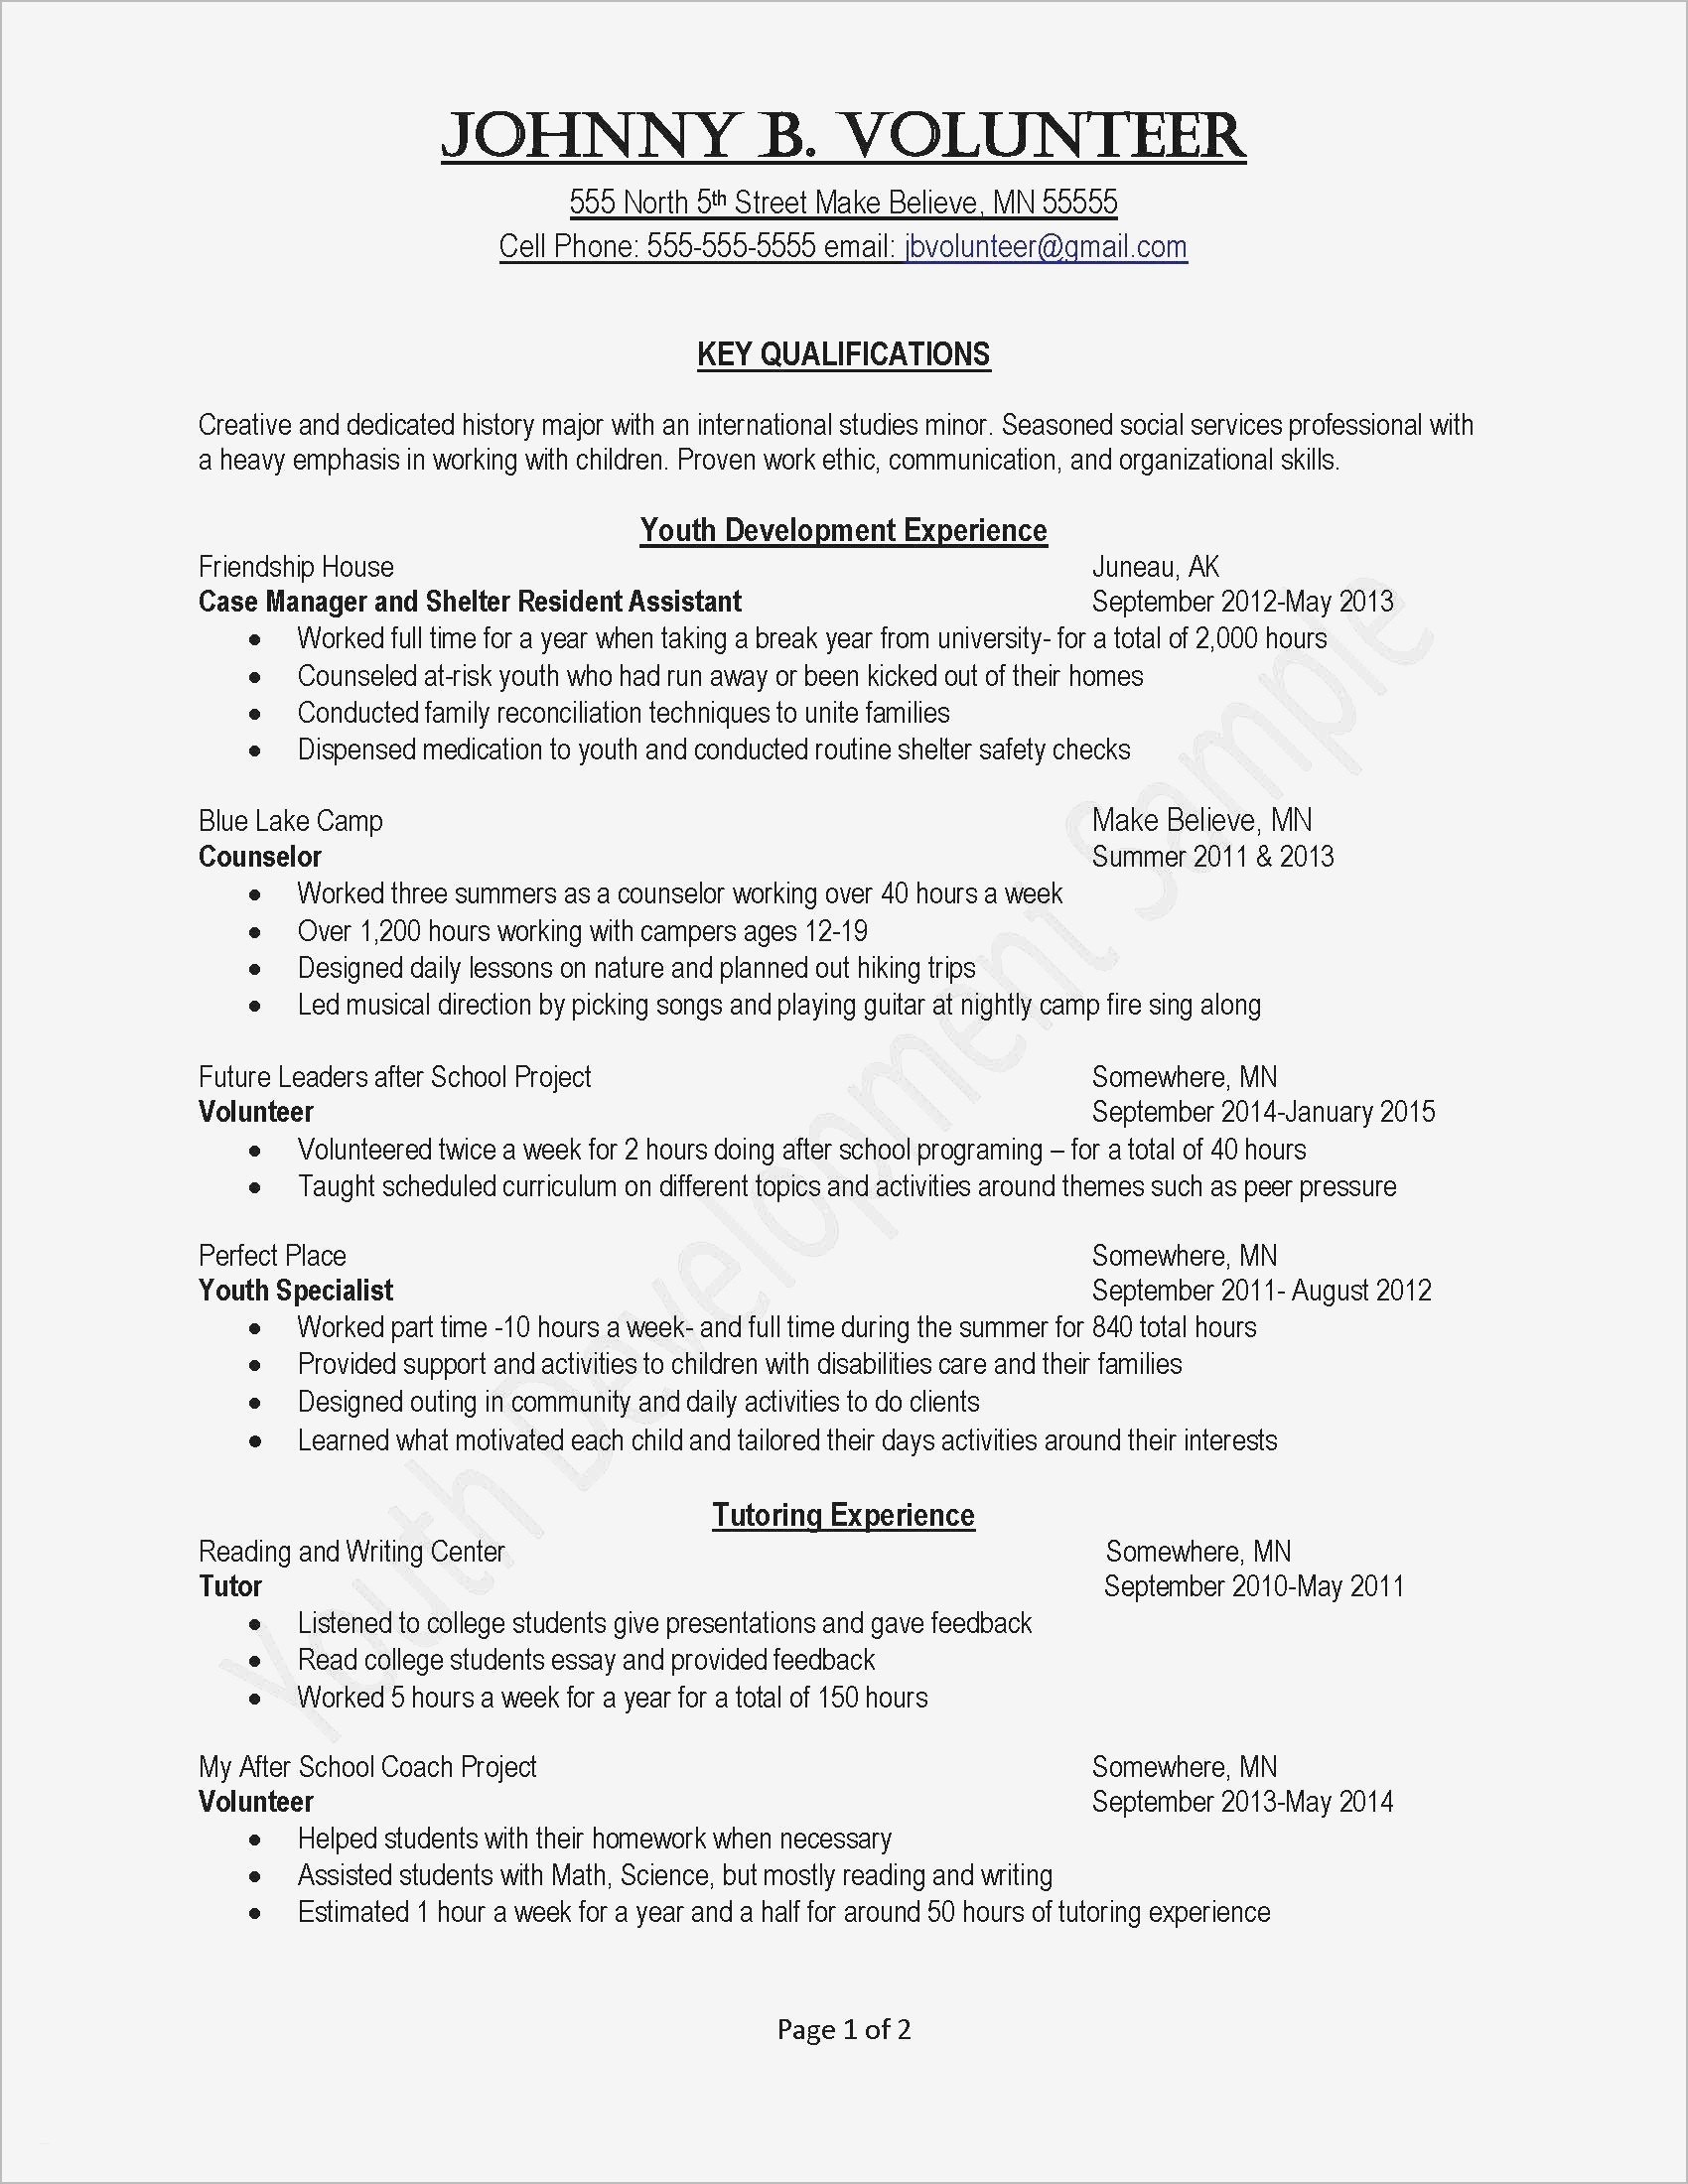 Resume Template for 16 Year Old - Job Application Covering Letter Template Save Activities Resume